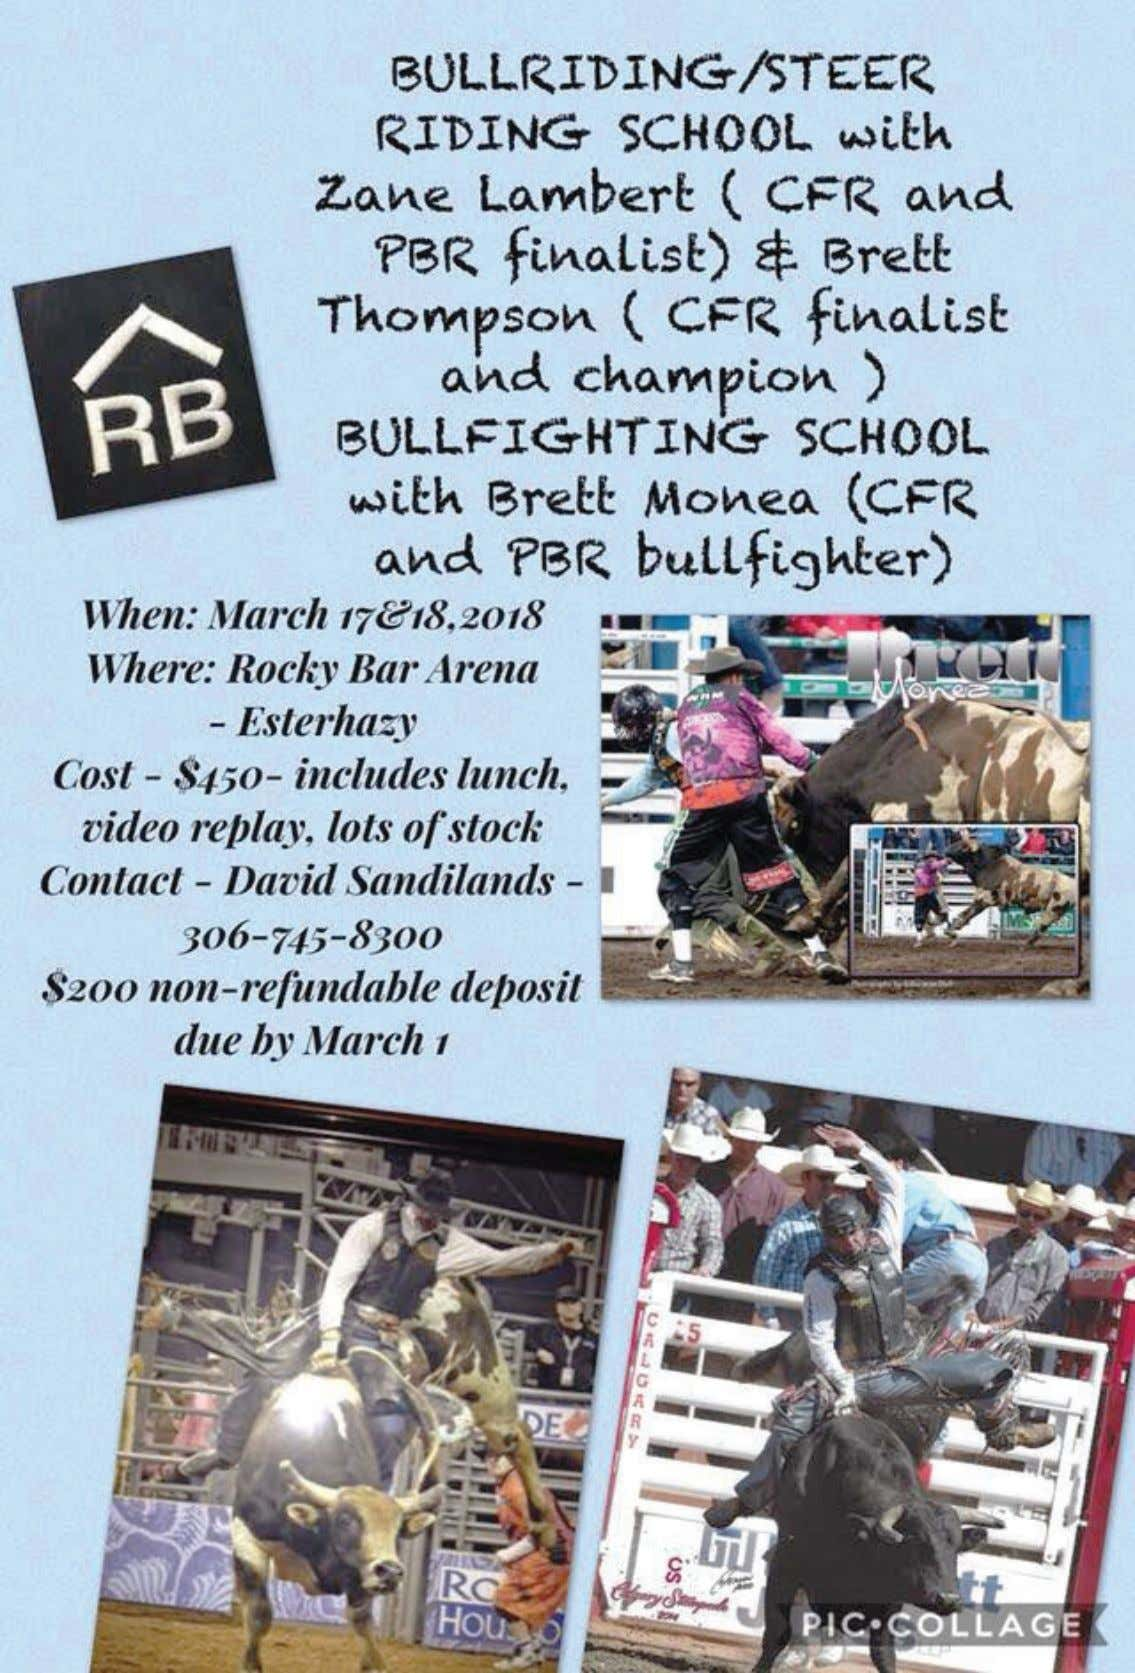 CCA RODEO NEWS MARCH 2018 - PAGE 8